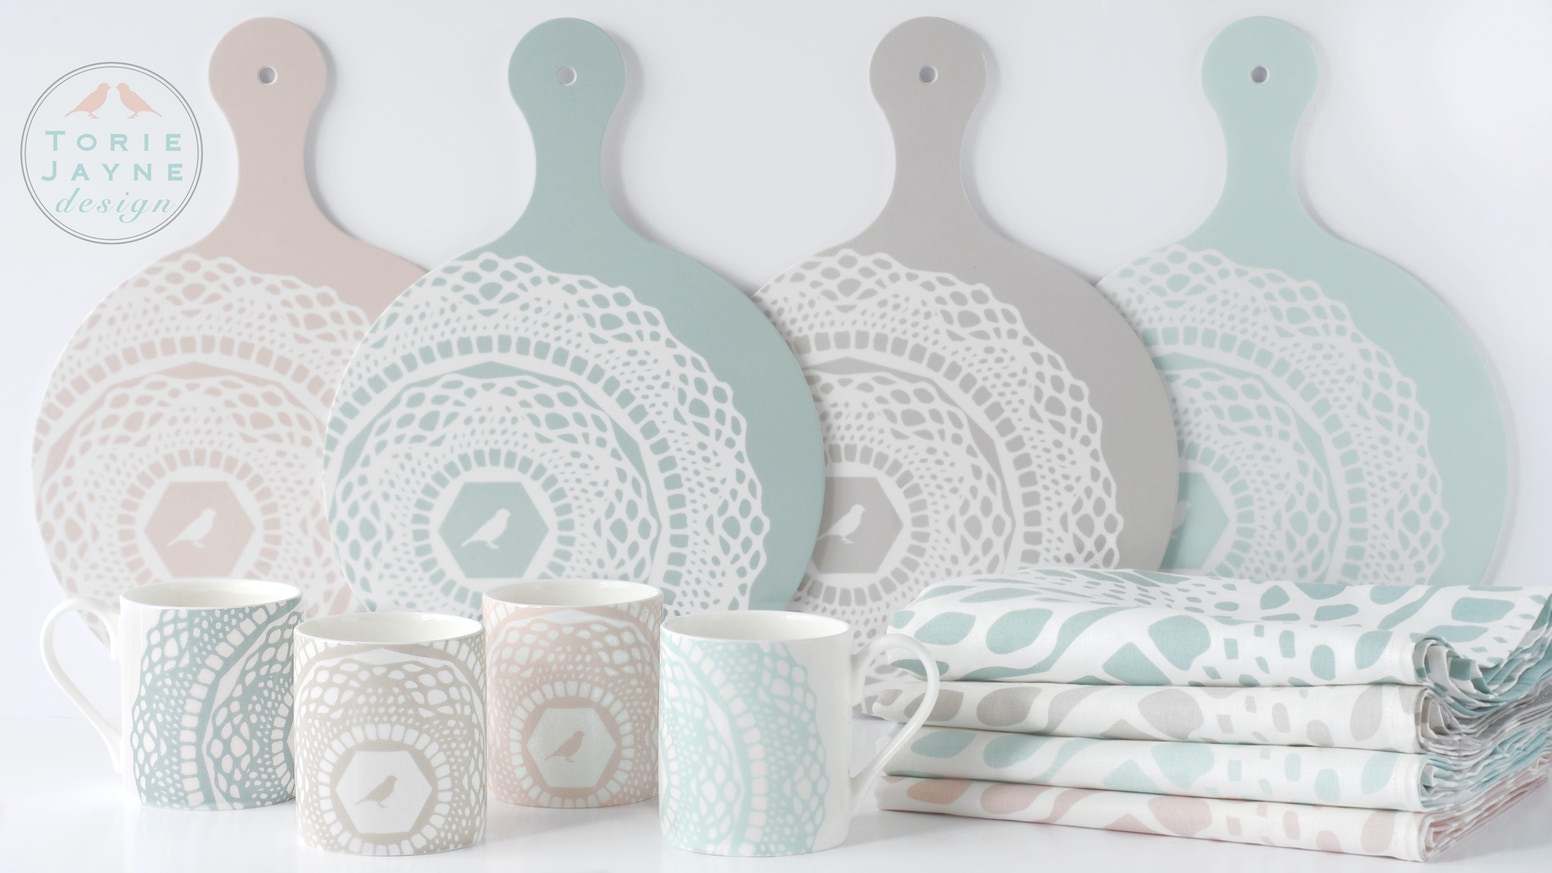 Design-led homeware brand in chalky pastels centred around the kitchen: fine bone china, melamine chopping boards, textiles. Made in UK